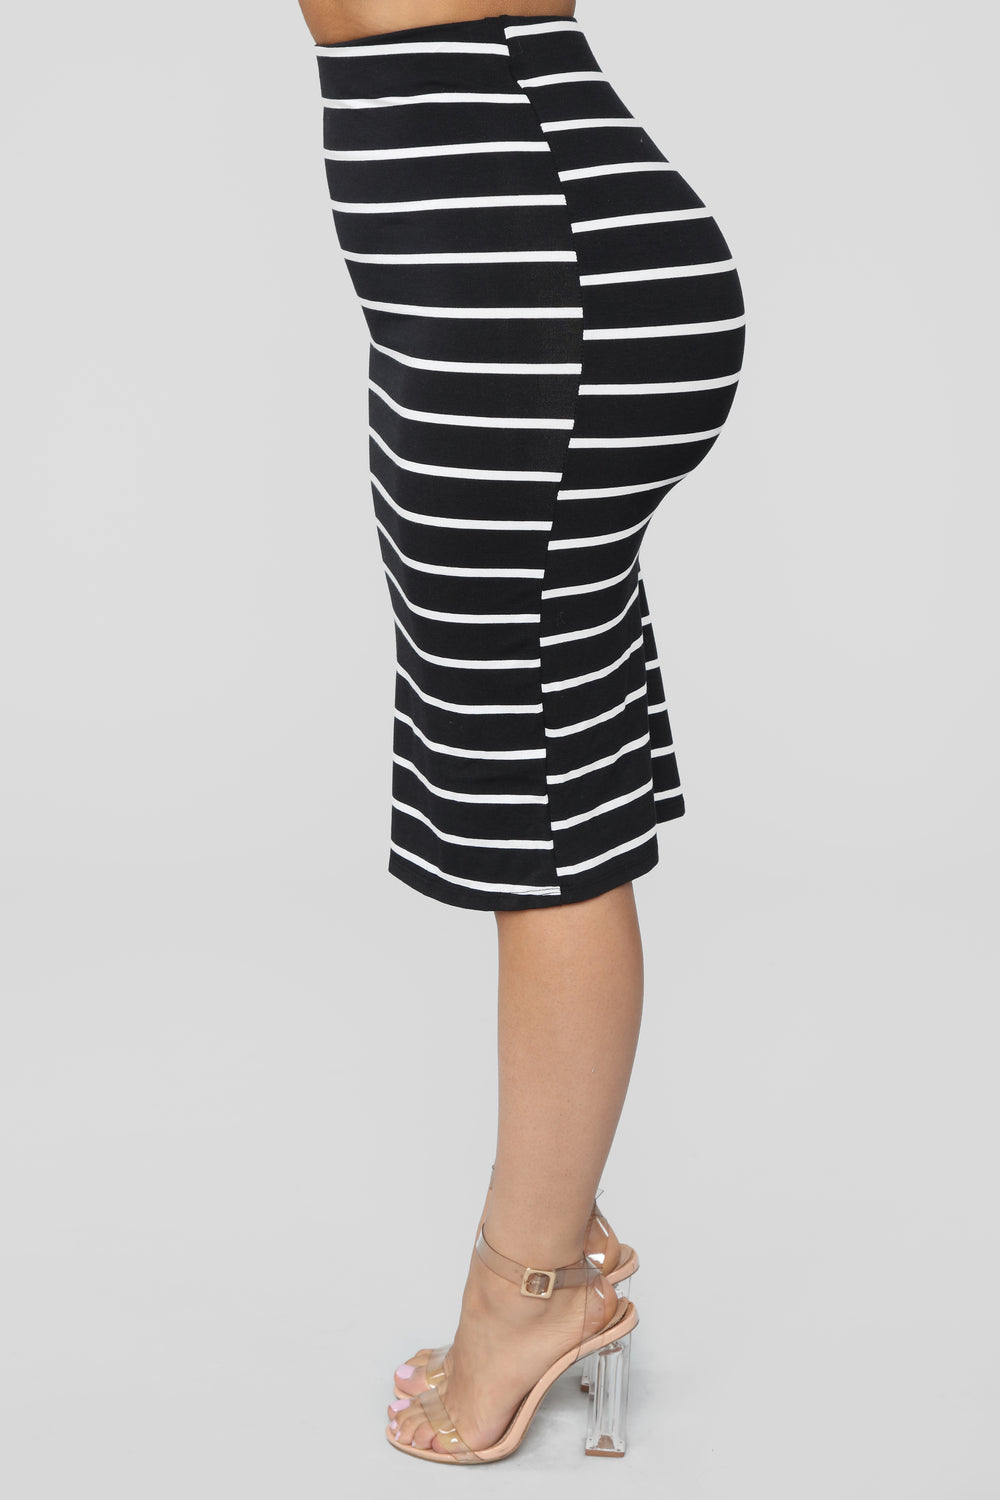 Lets Keep Things Casual Striped Skirt - Black/White